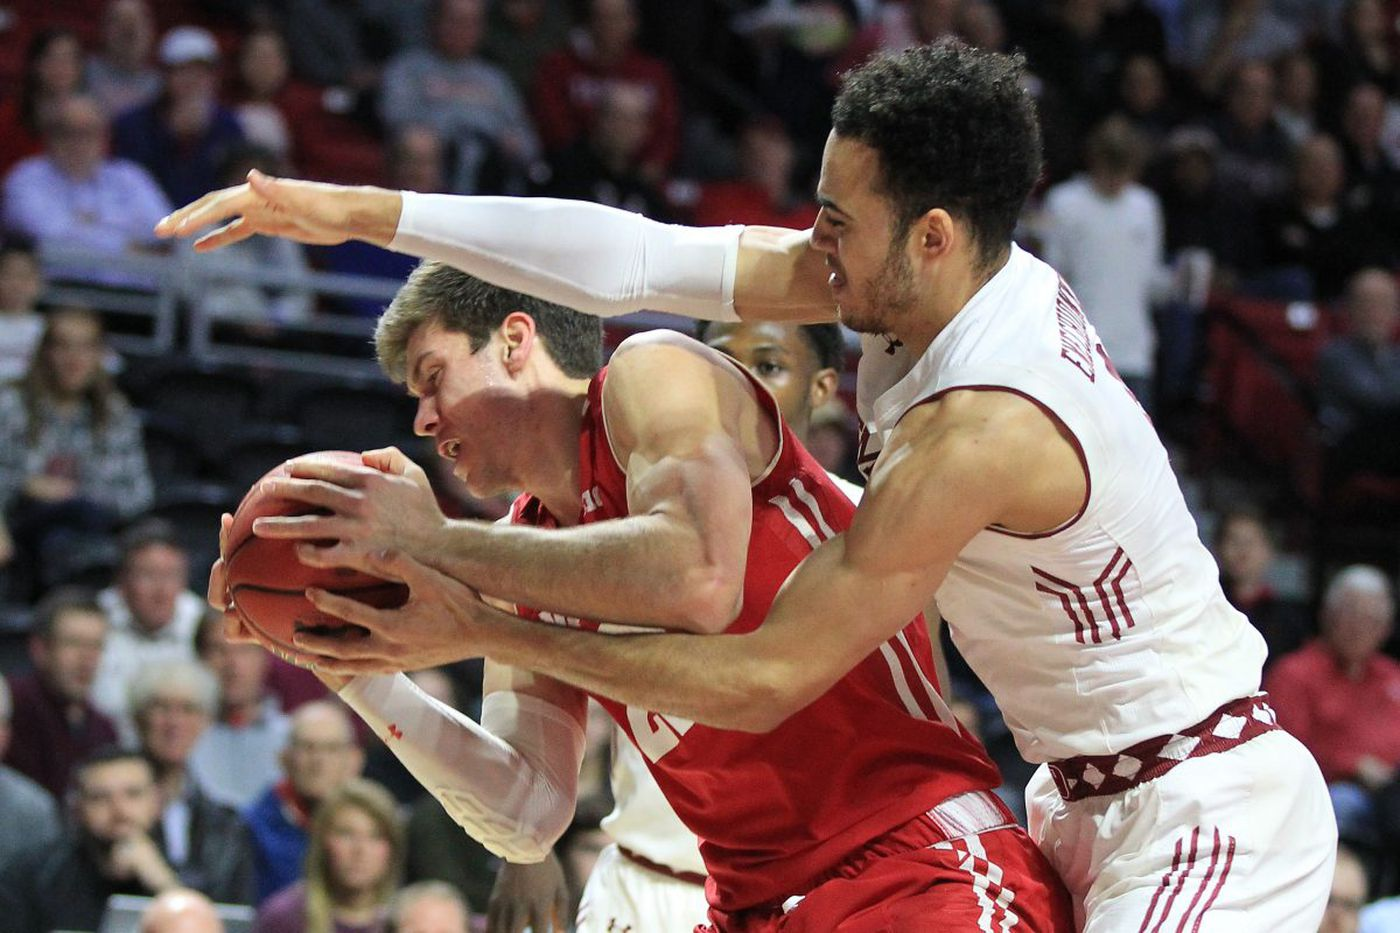 Temple outlasts Wisconsin as Shizz Alston scores 22